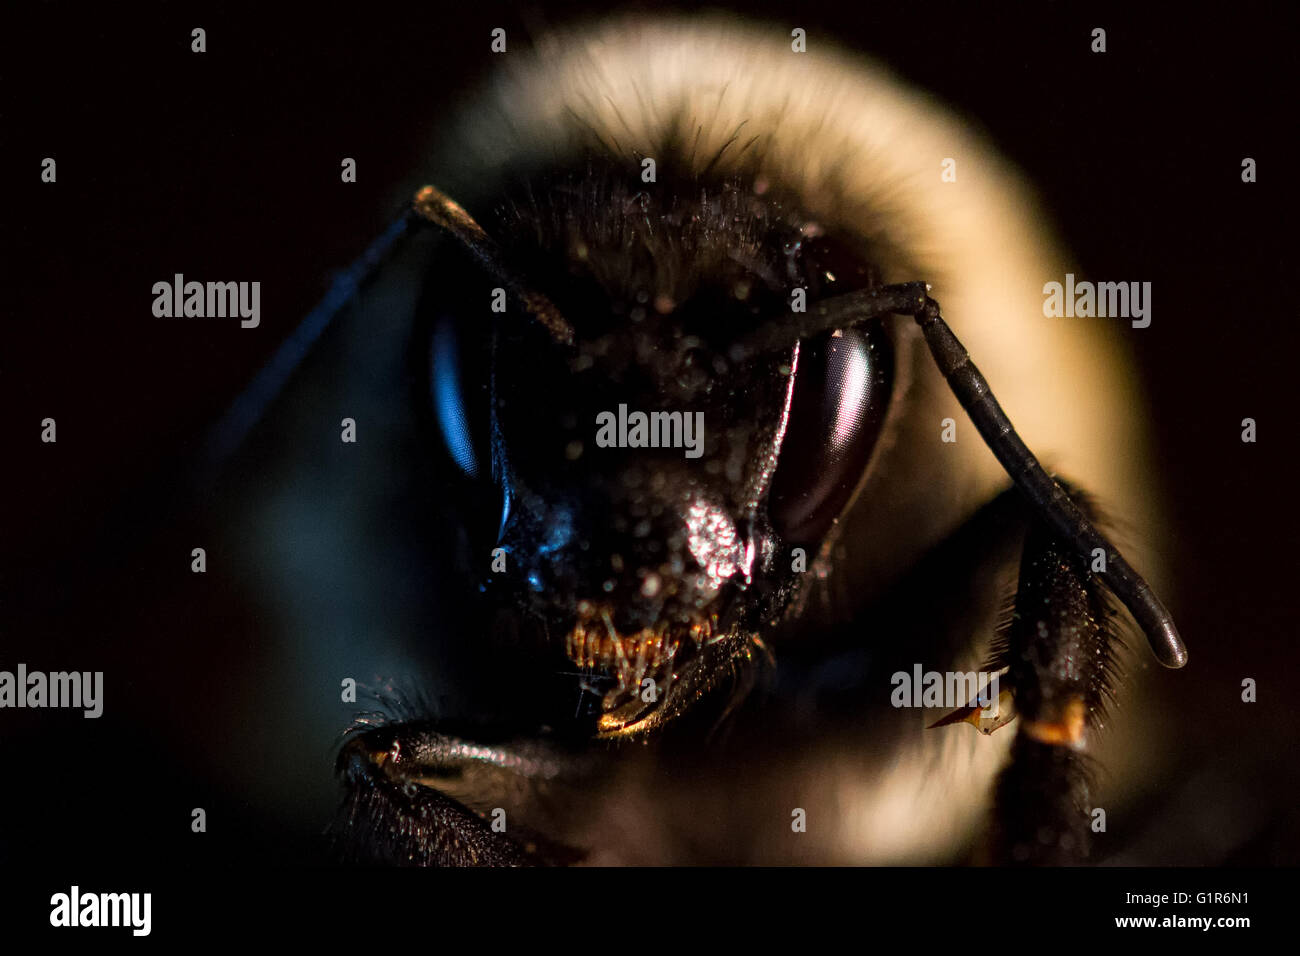 face of a bumblebee - Stock Image